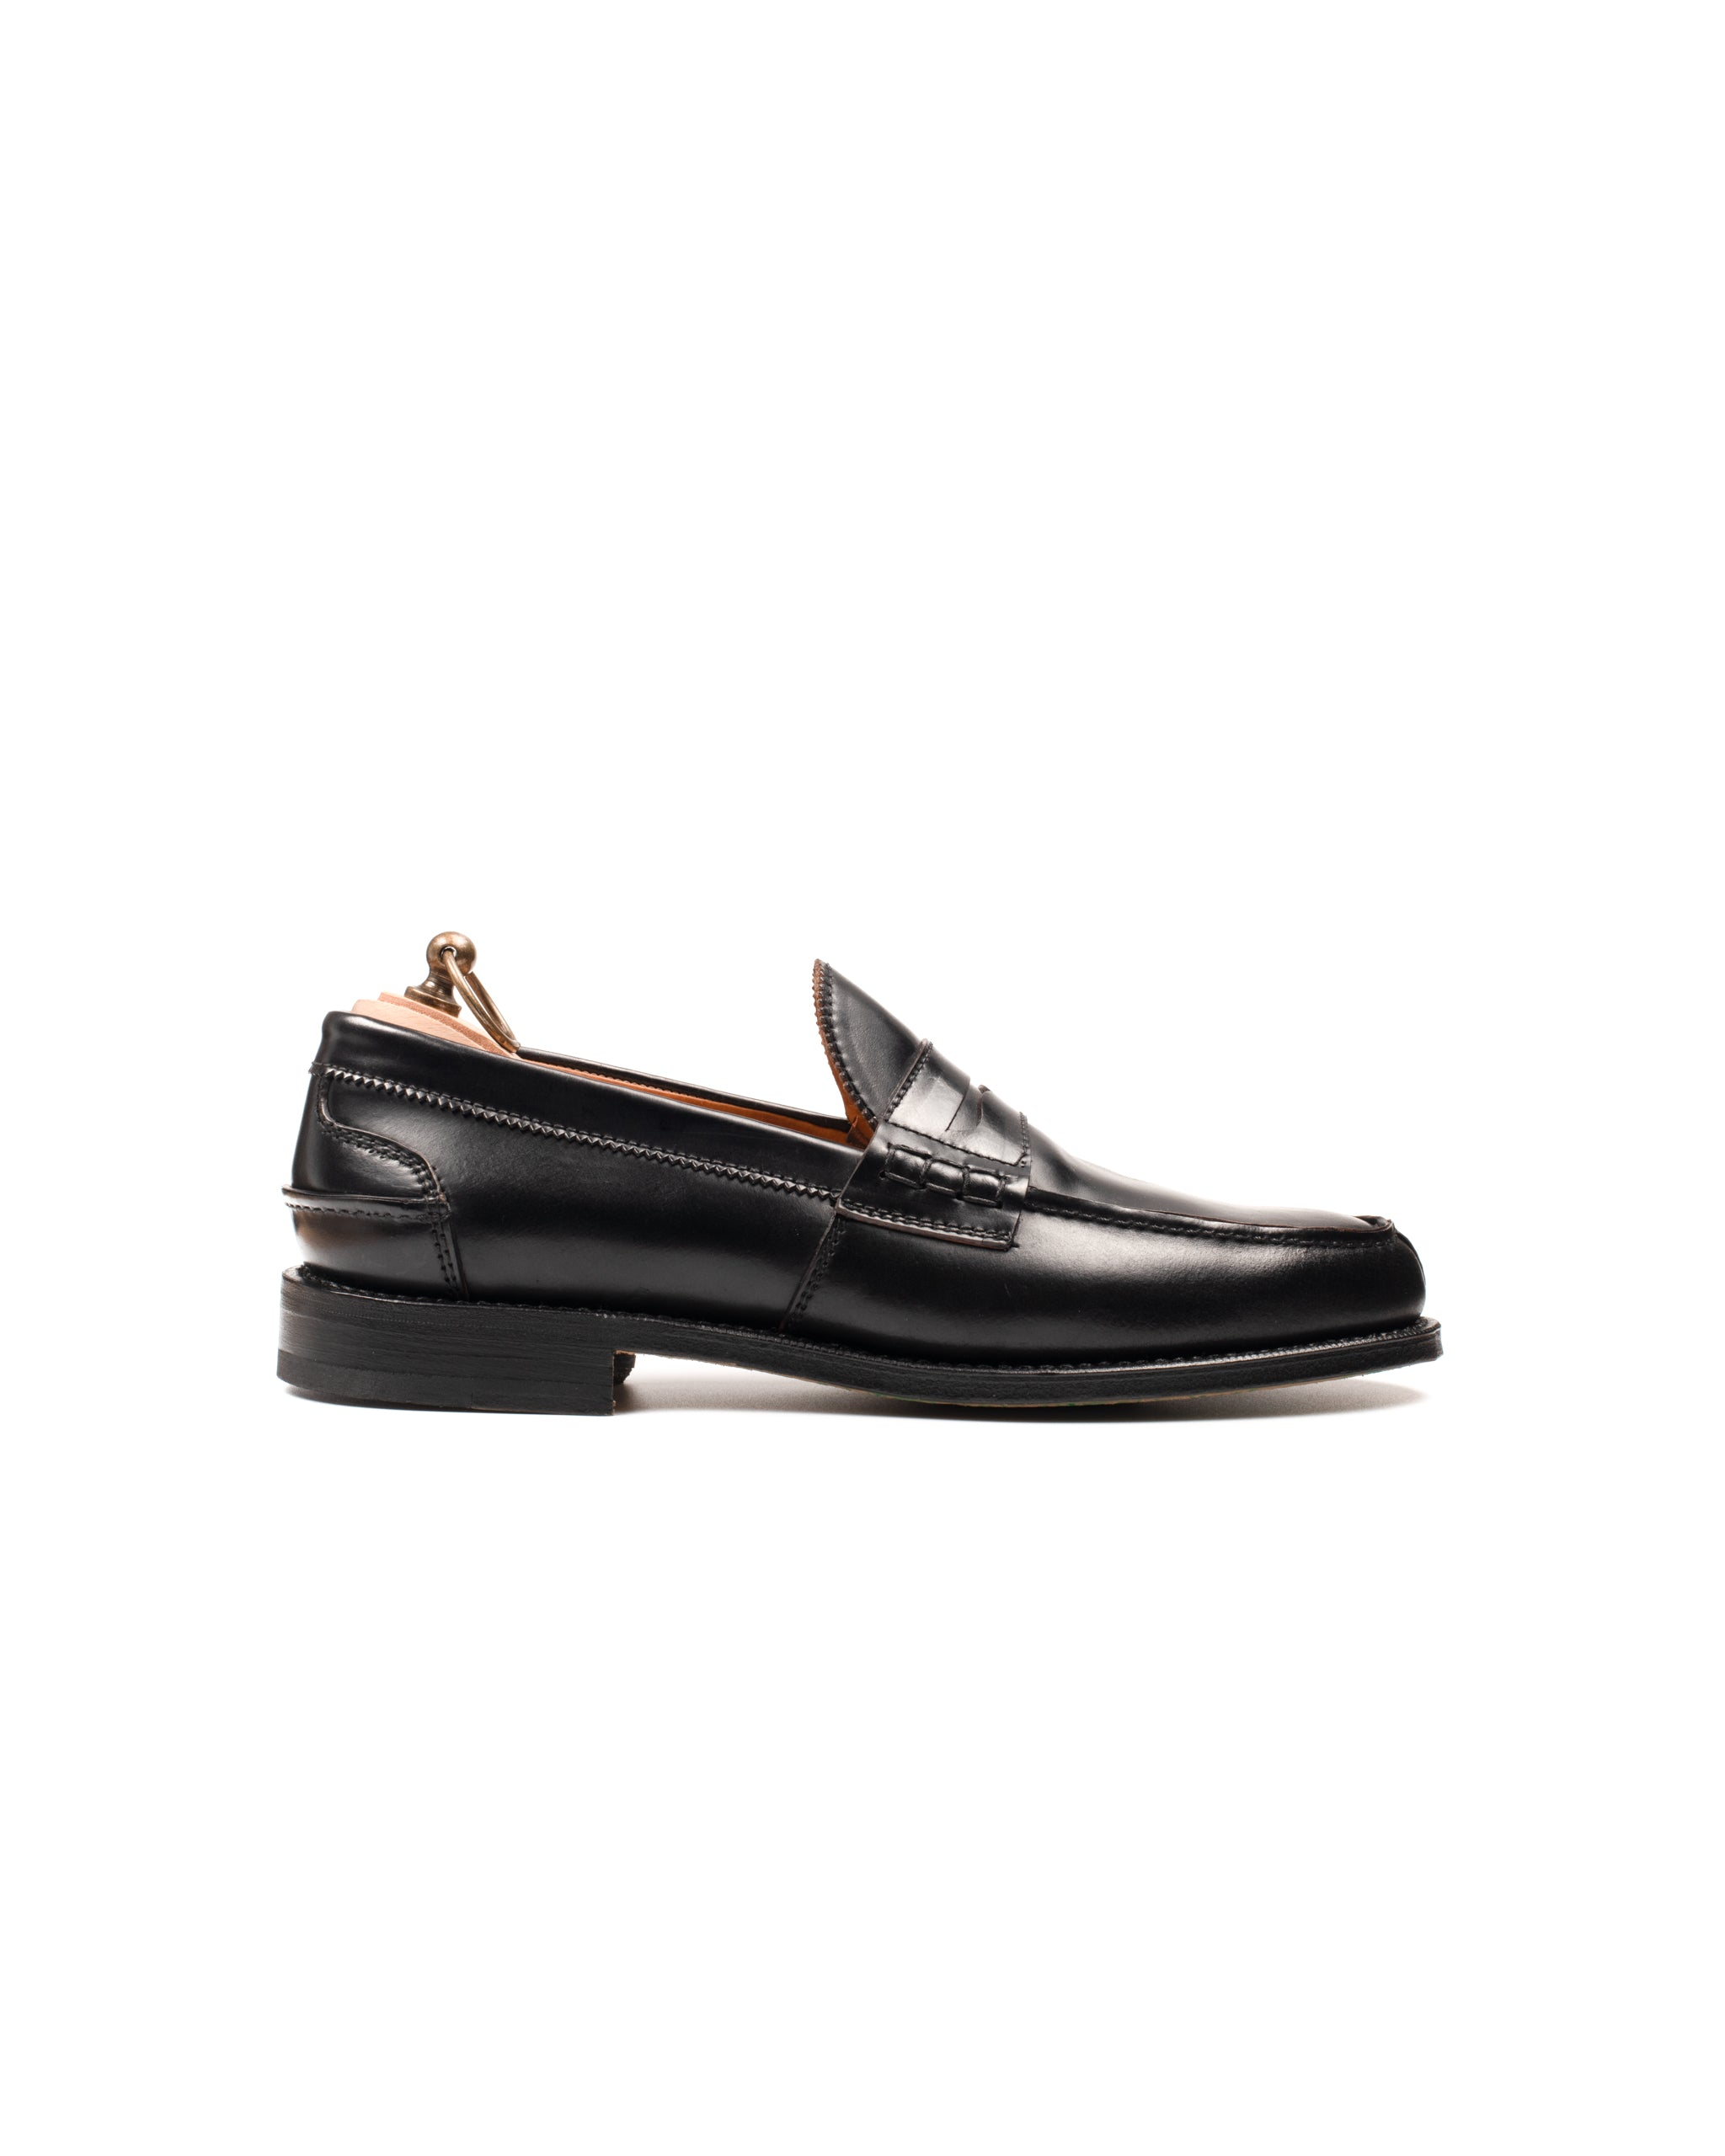 Penny Loafer // Milano // Shell Cordovan // Schwarz // Rendenbach Ledersohle